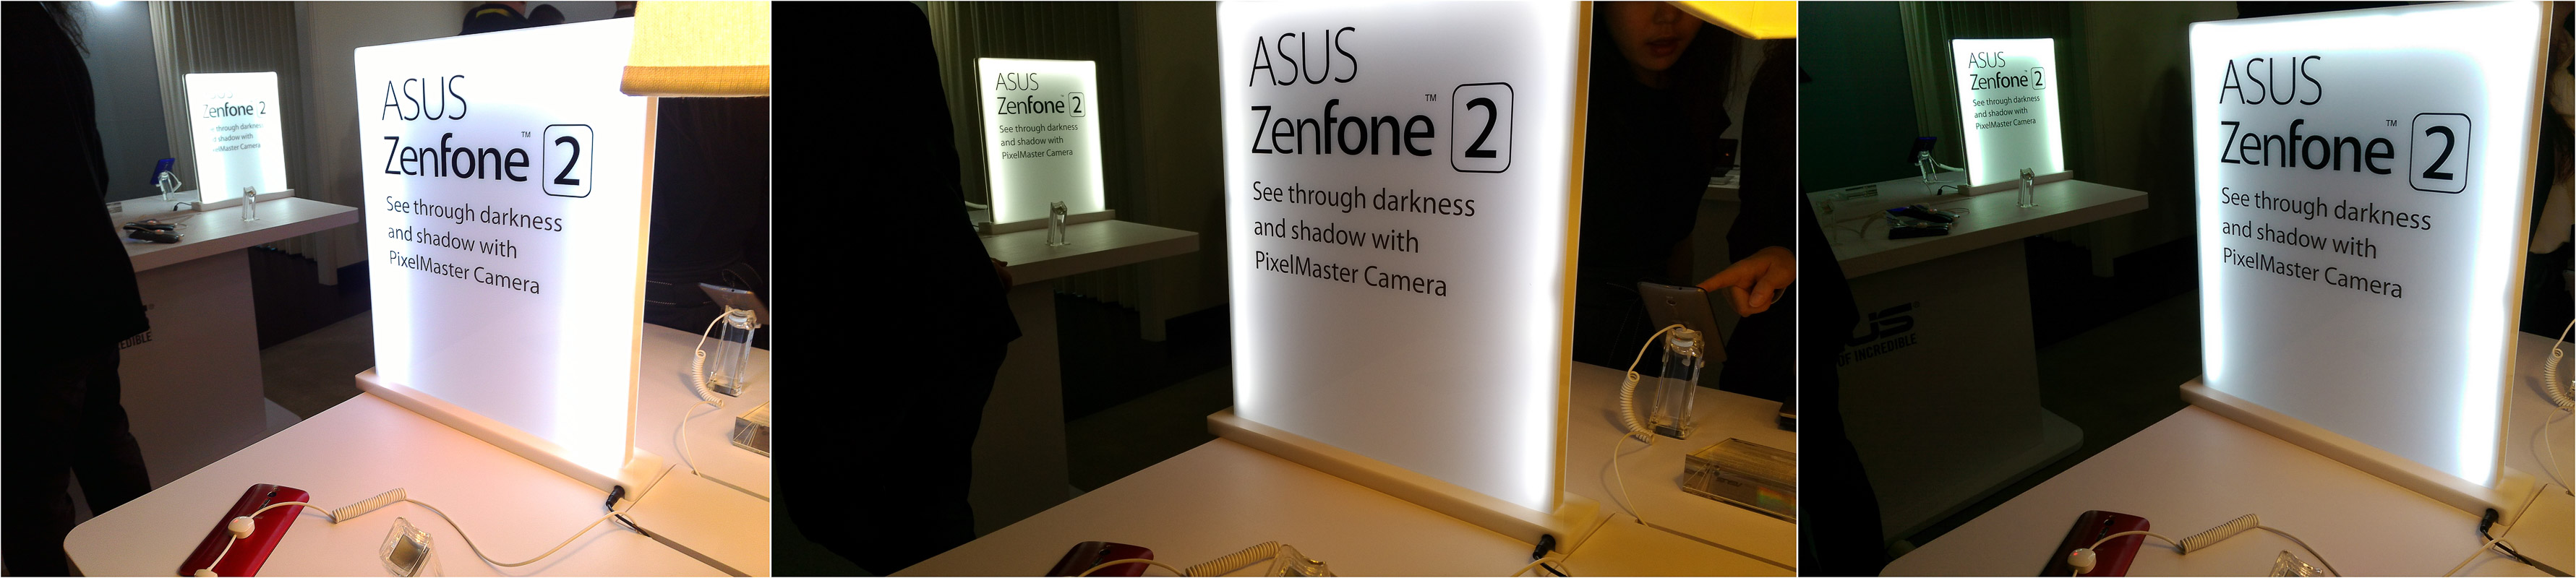 Photo-from-Asus-Zenfone-2-vs-Note-4-vs-ONE-M8-SepcPhone-001